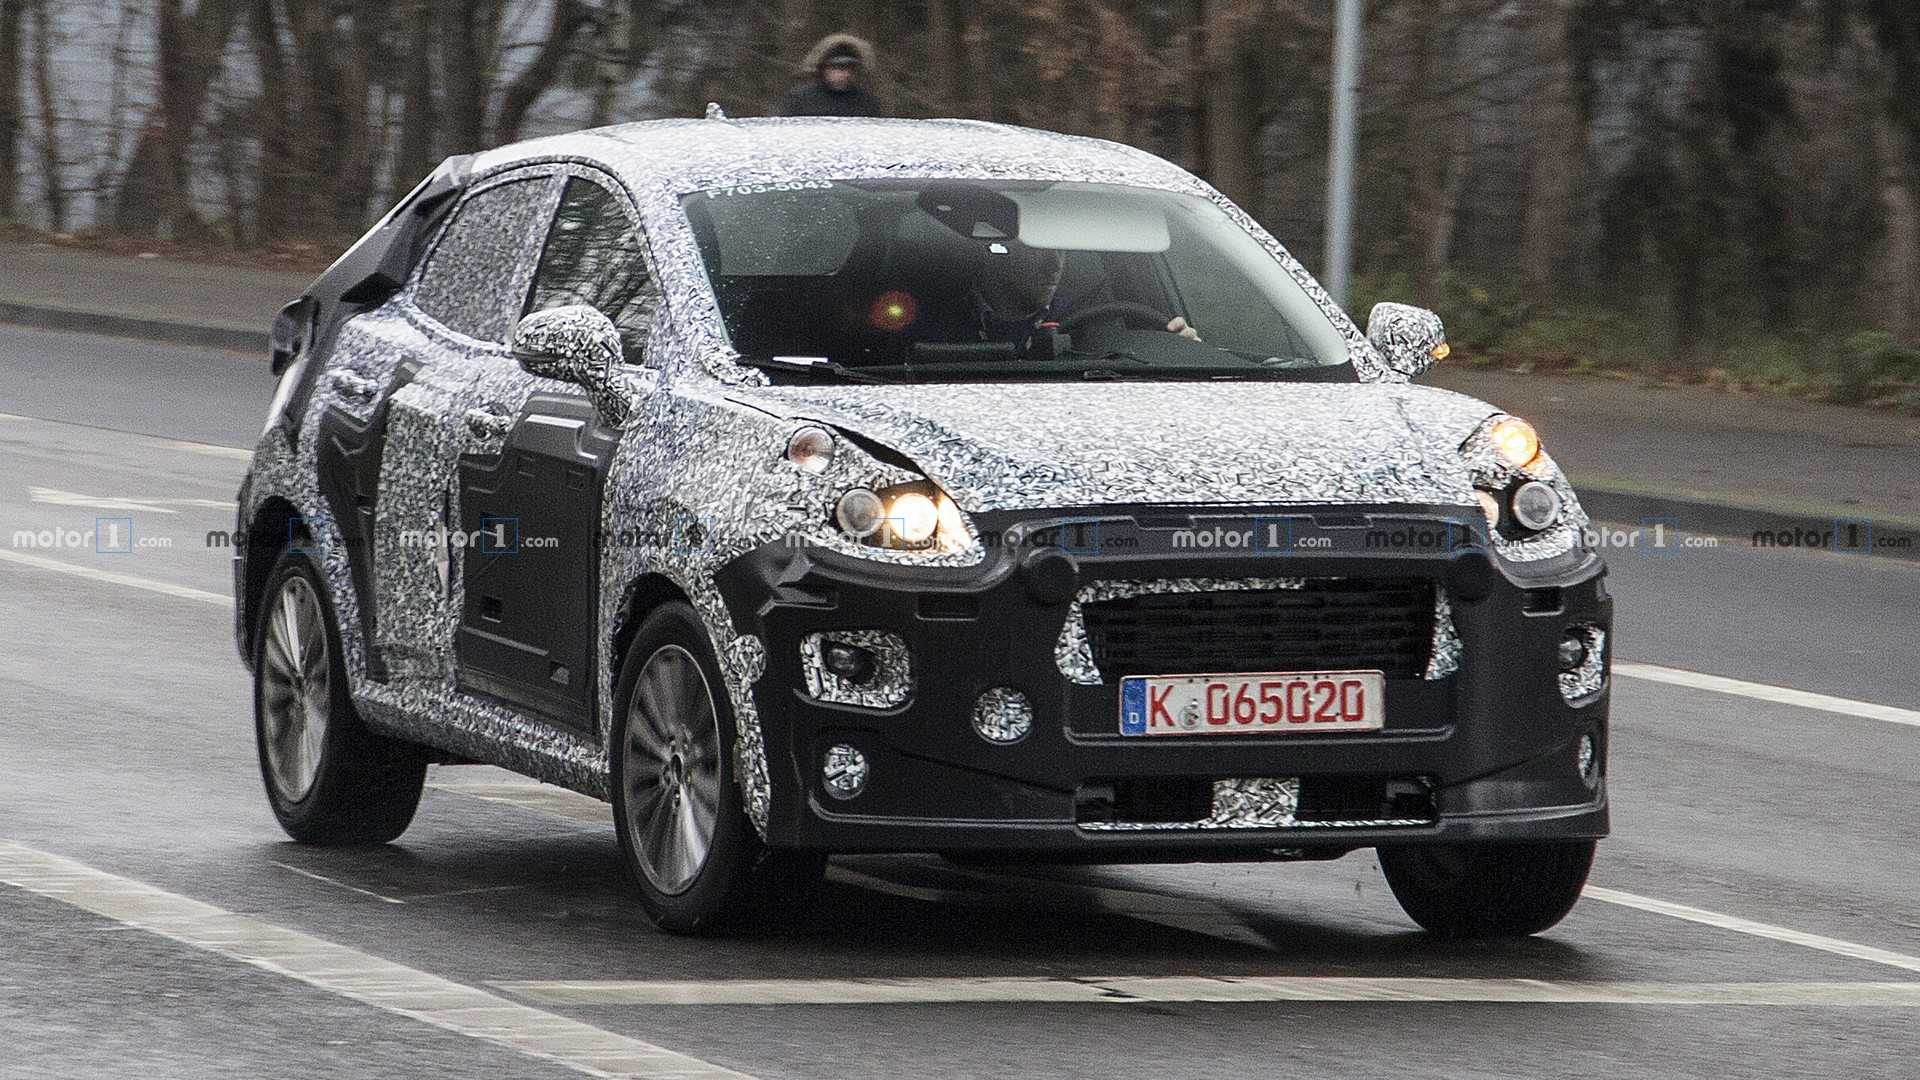 2020 Ford EcoSport Spy Photos And New Generation >> What Is Ford Testing With This Mysterious Crossover Prototype